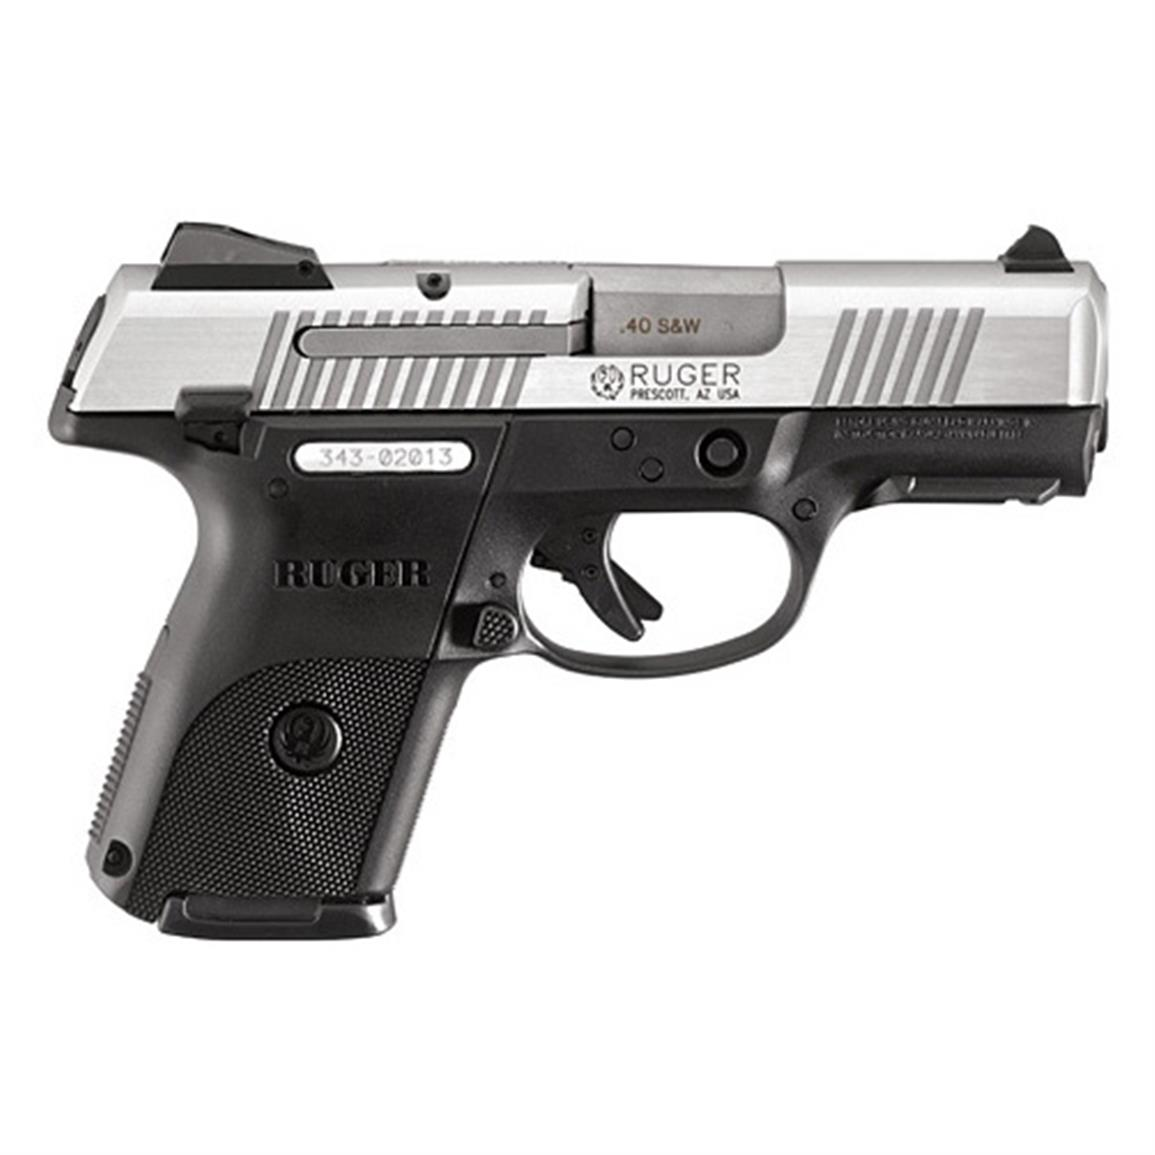 "Ruger SR40c, Semi-Automatic, .40 Smith & Wesson, 3.5"" Barrel, 9+1 Rounds"